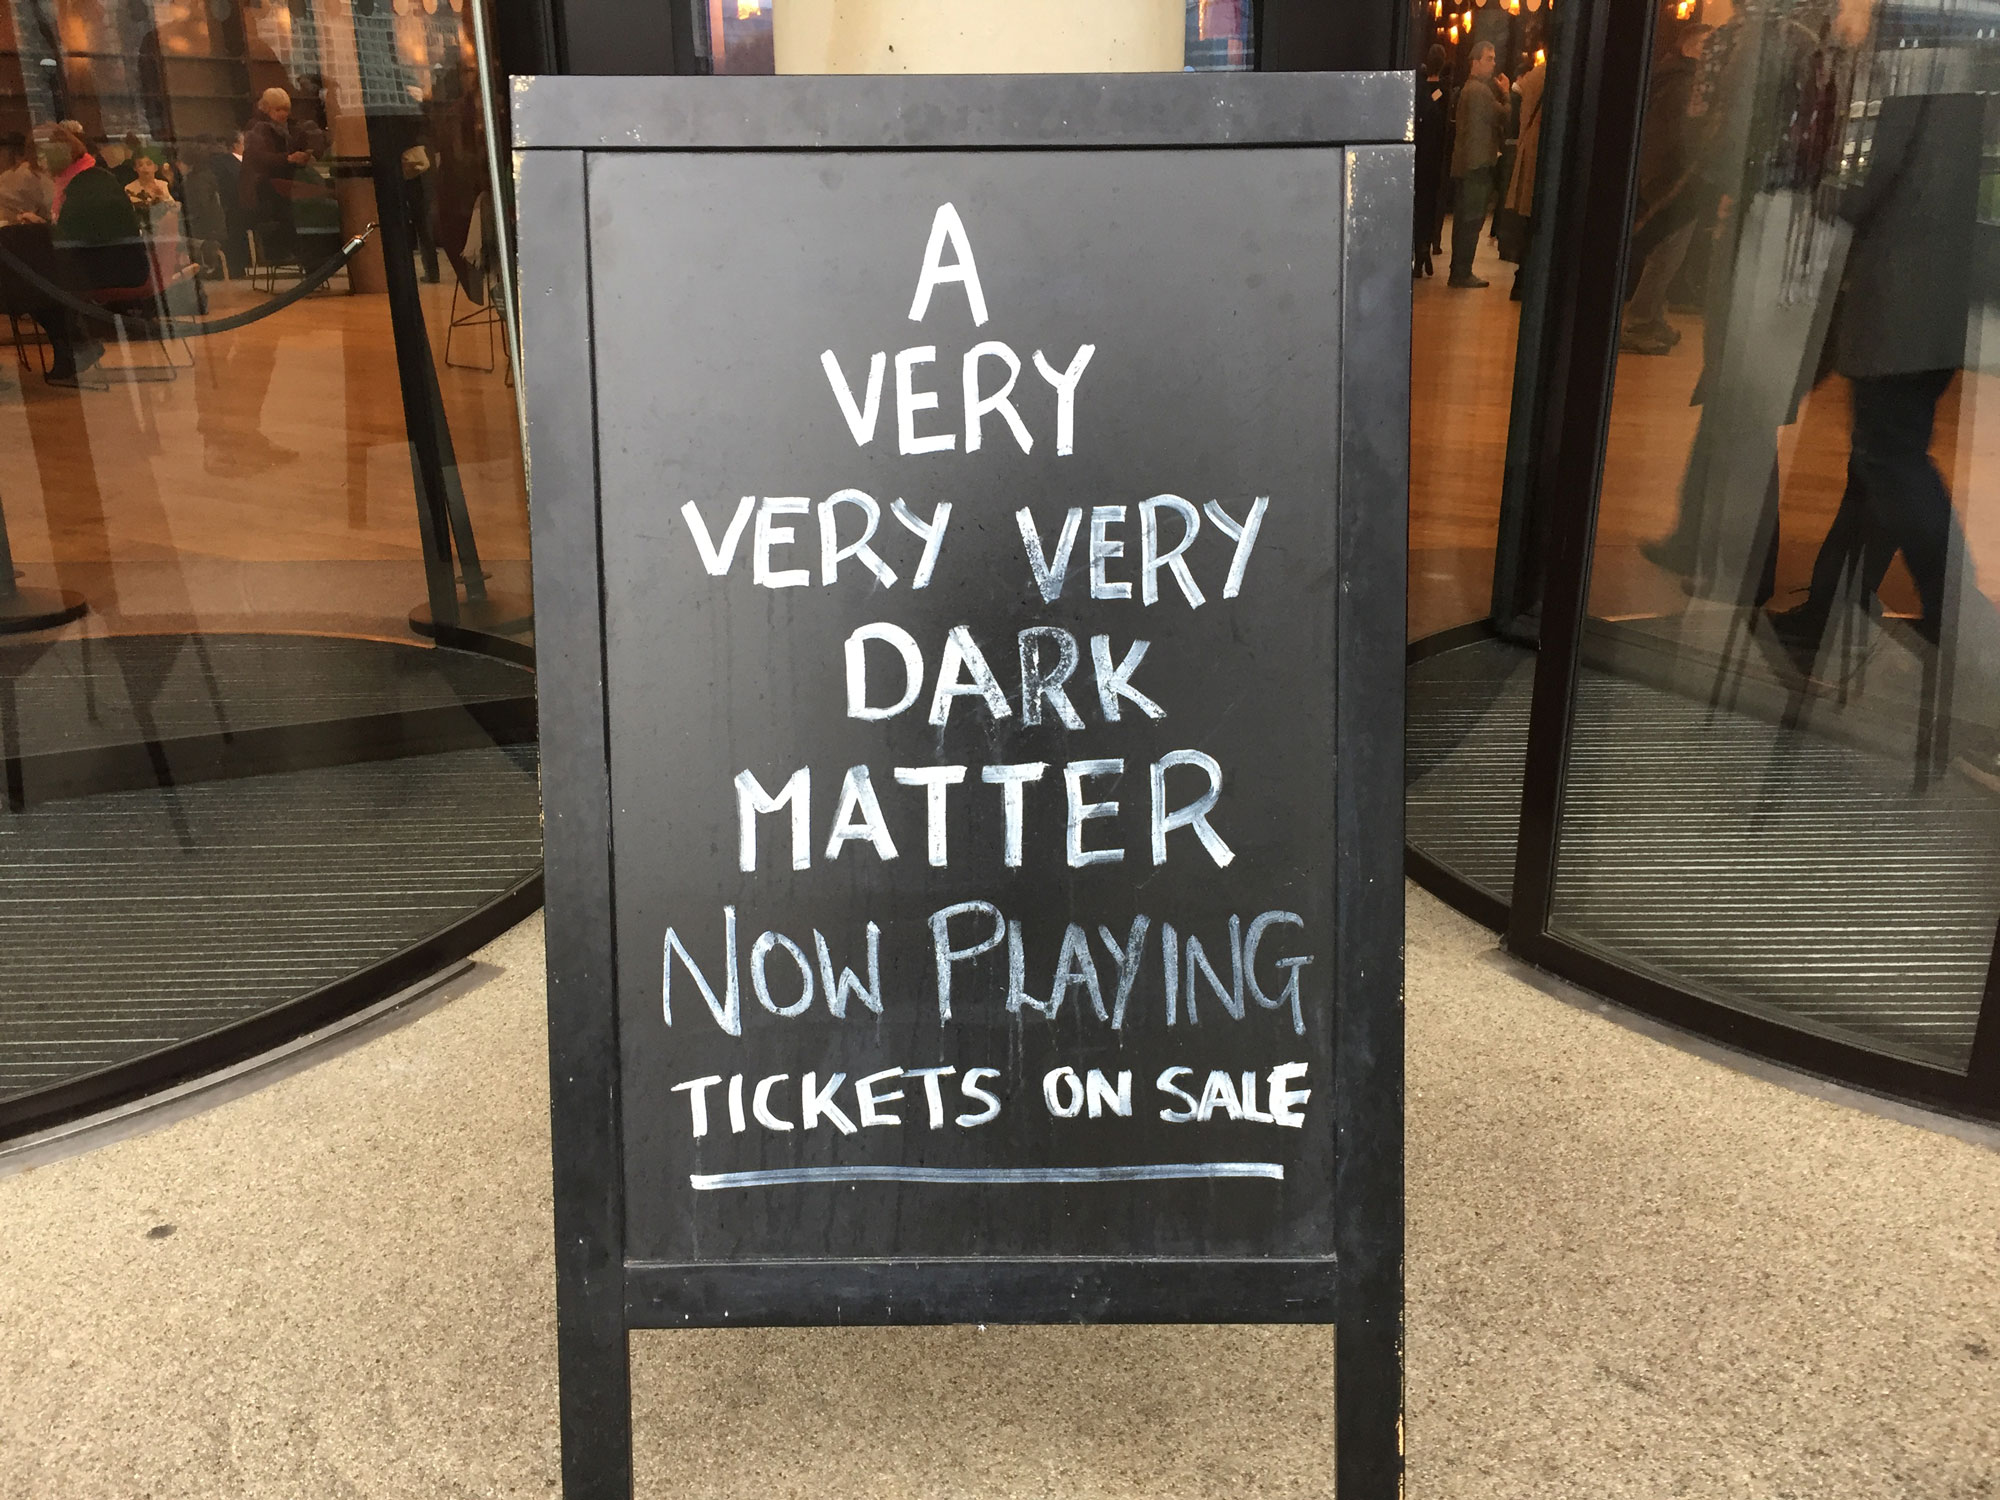 On the ground in front of two revolving glass doors sits a chalk board. On the board is written 'A very very very dark matter now playing...'